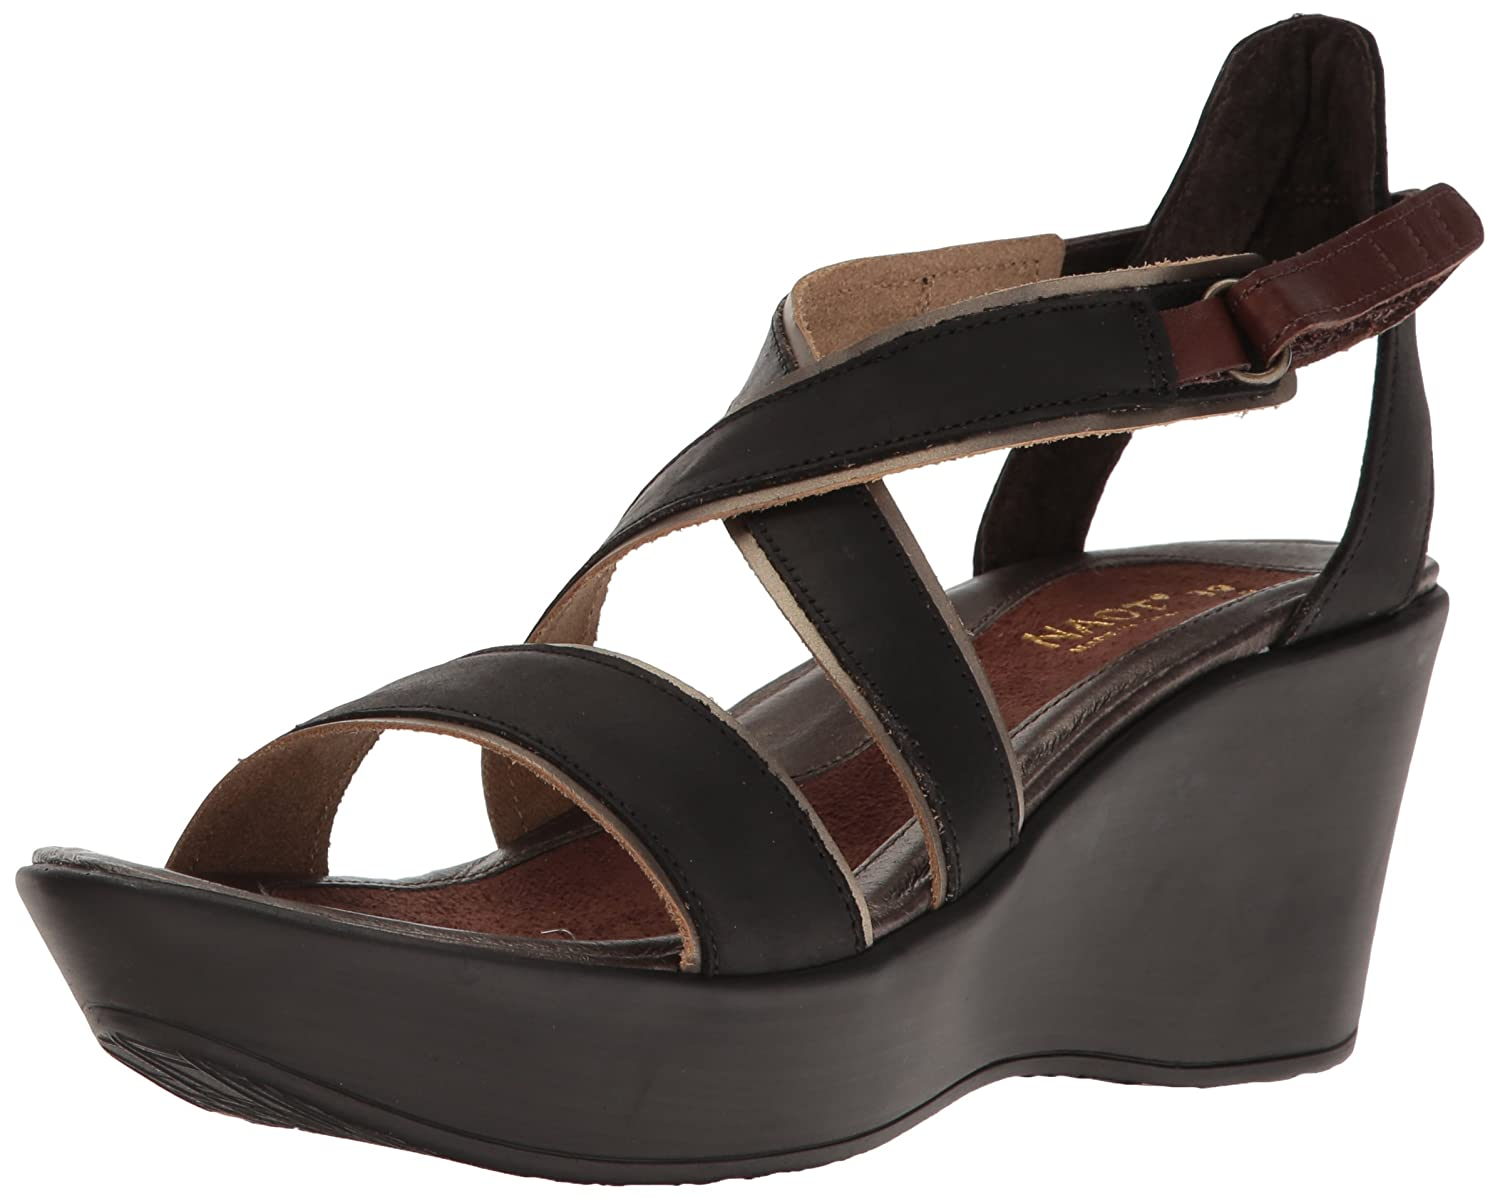 Naot Footwear Women's Gesture B01HT90DRY 39 (US Women's 8) M|Oily Coal Nubuck/Pewter Leather/Brown Haze Leather/Toffee Brown